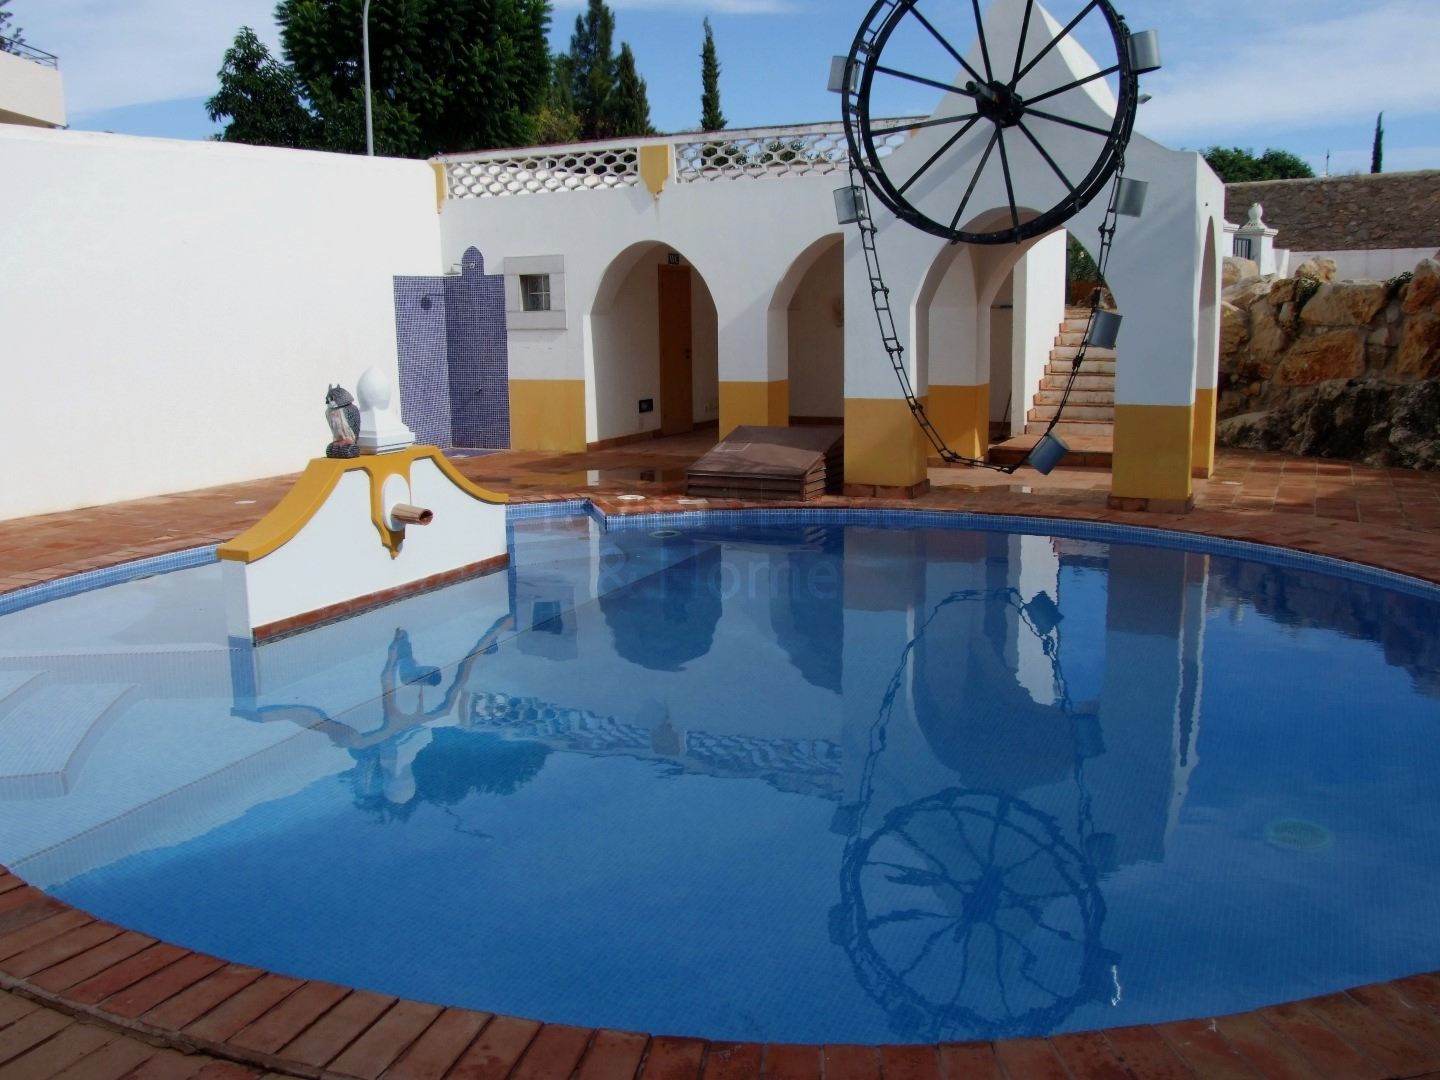 A0509 - 3 Bedroom Apartment With Pool  Tavira  Central Tavira  Portugal